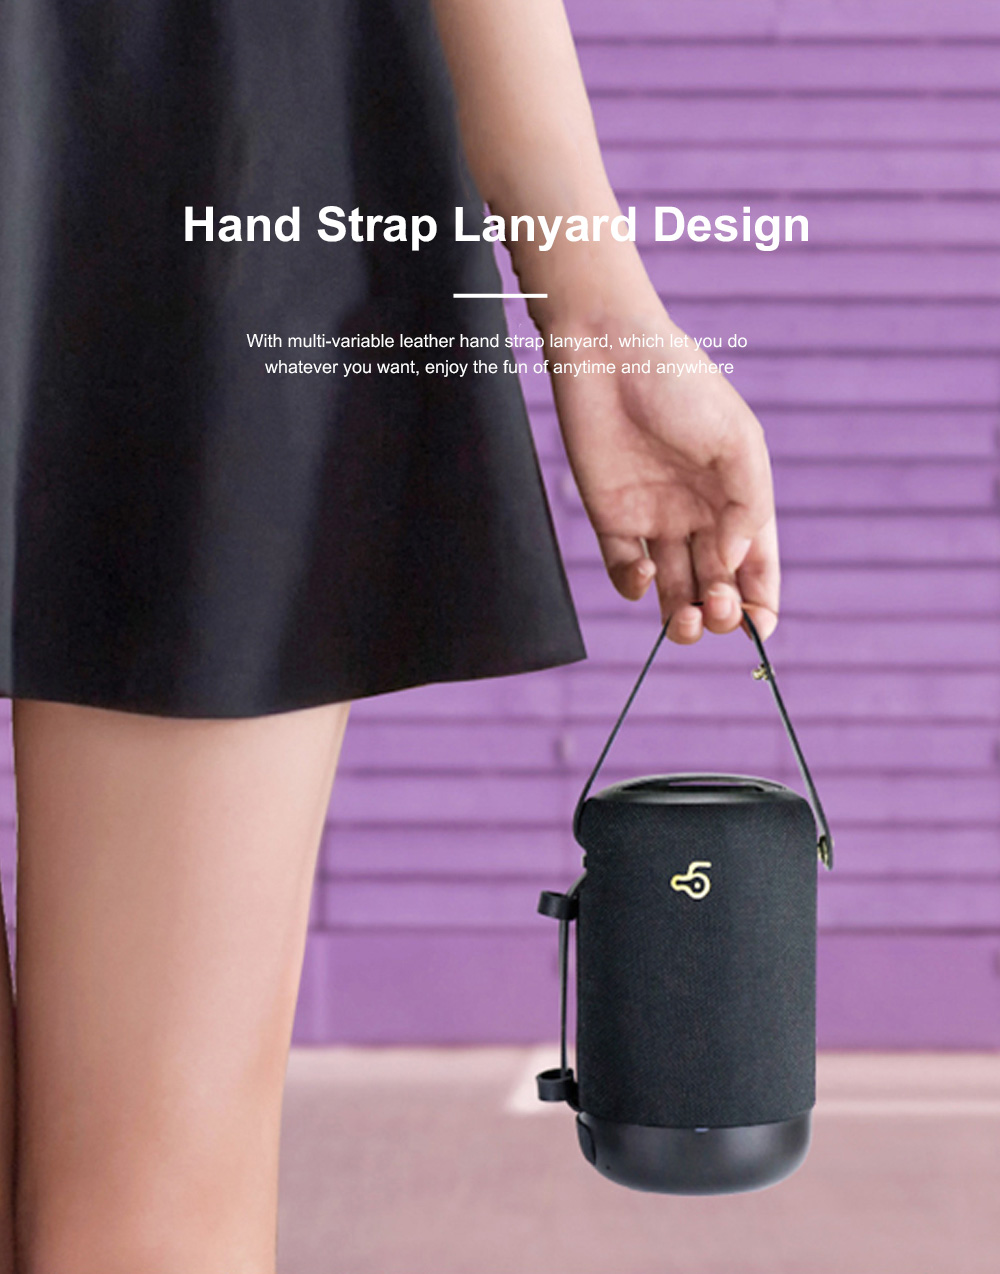 New Design Outdoor Portable Wireless Mini Portable Bluetooth Speaker Stereo Support TF Card Usb Charge Radio Subwoofer With Shoulder Strap 5